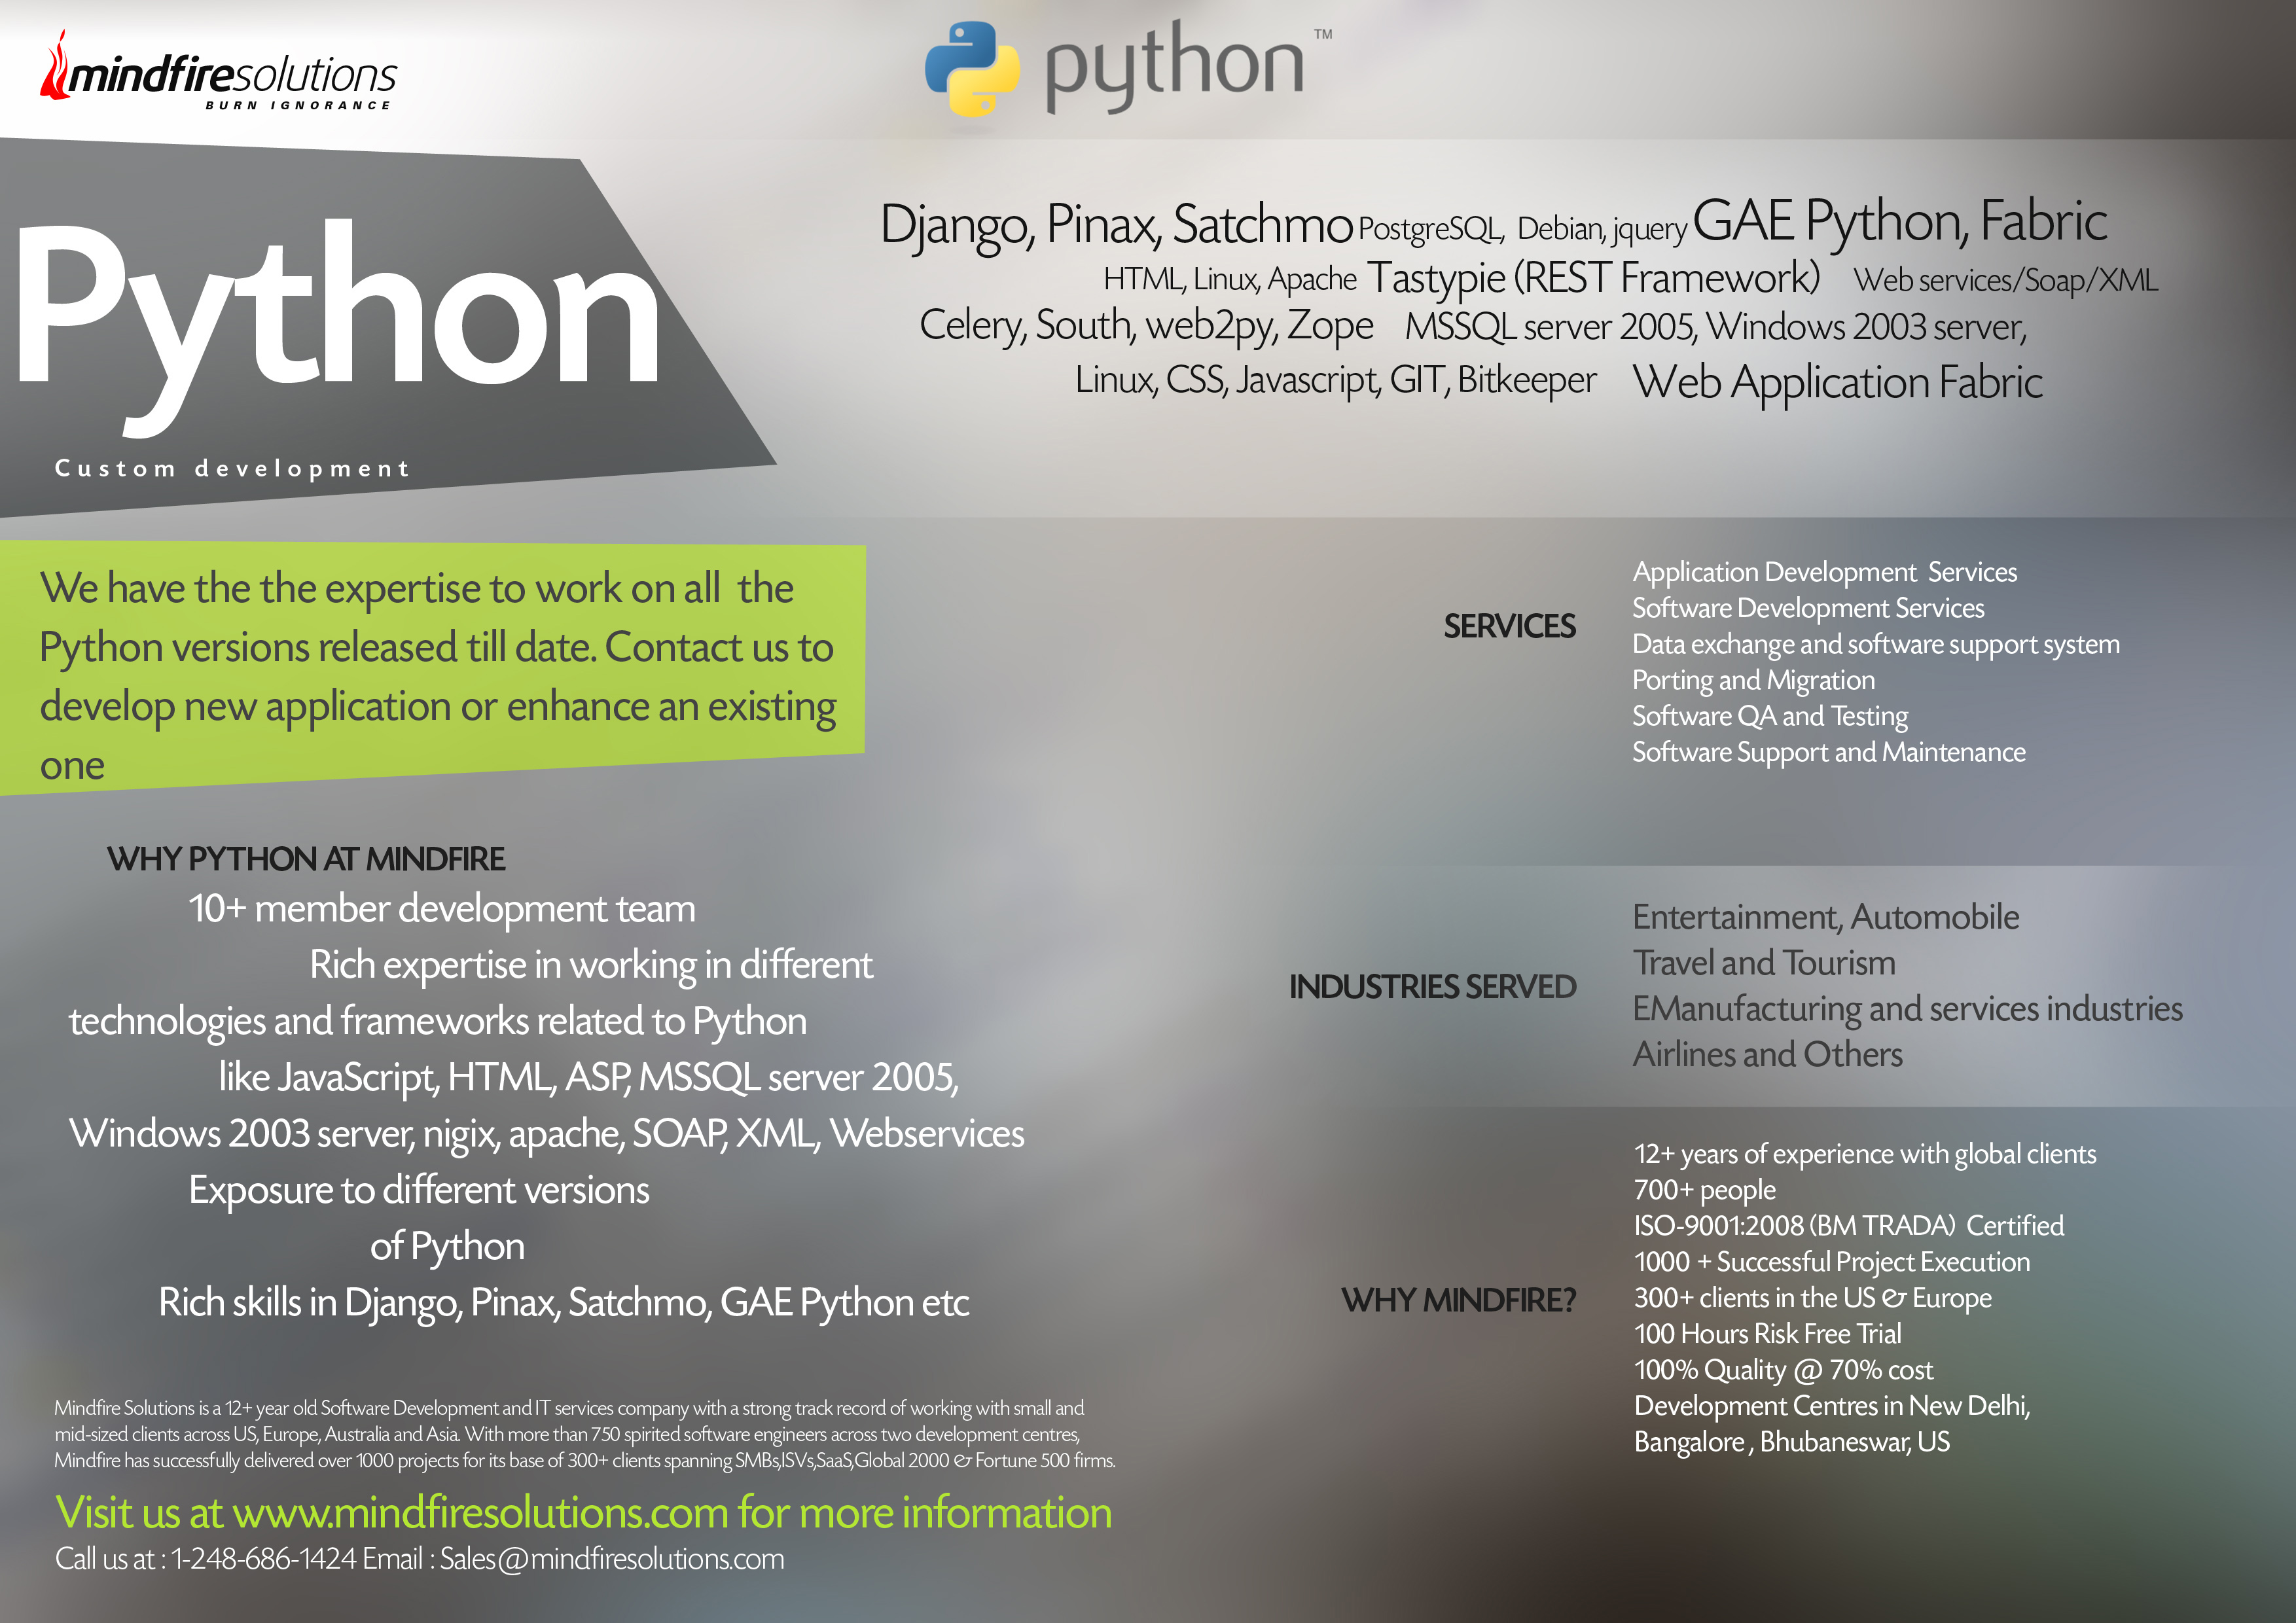 how to develop a software in python